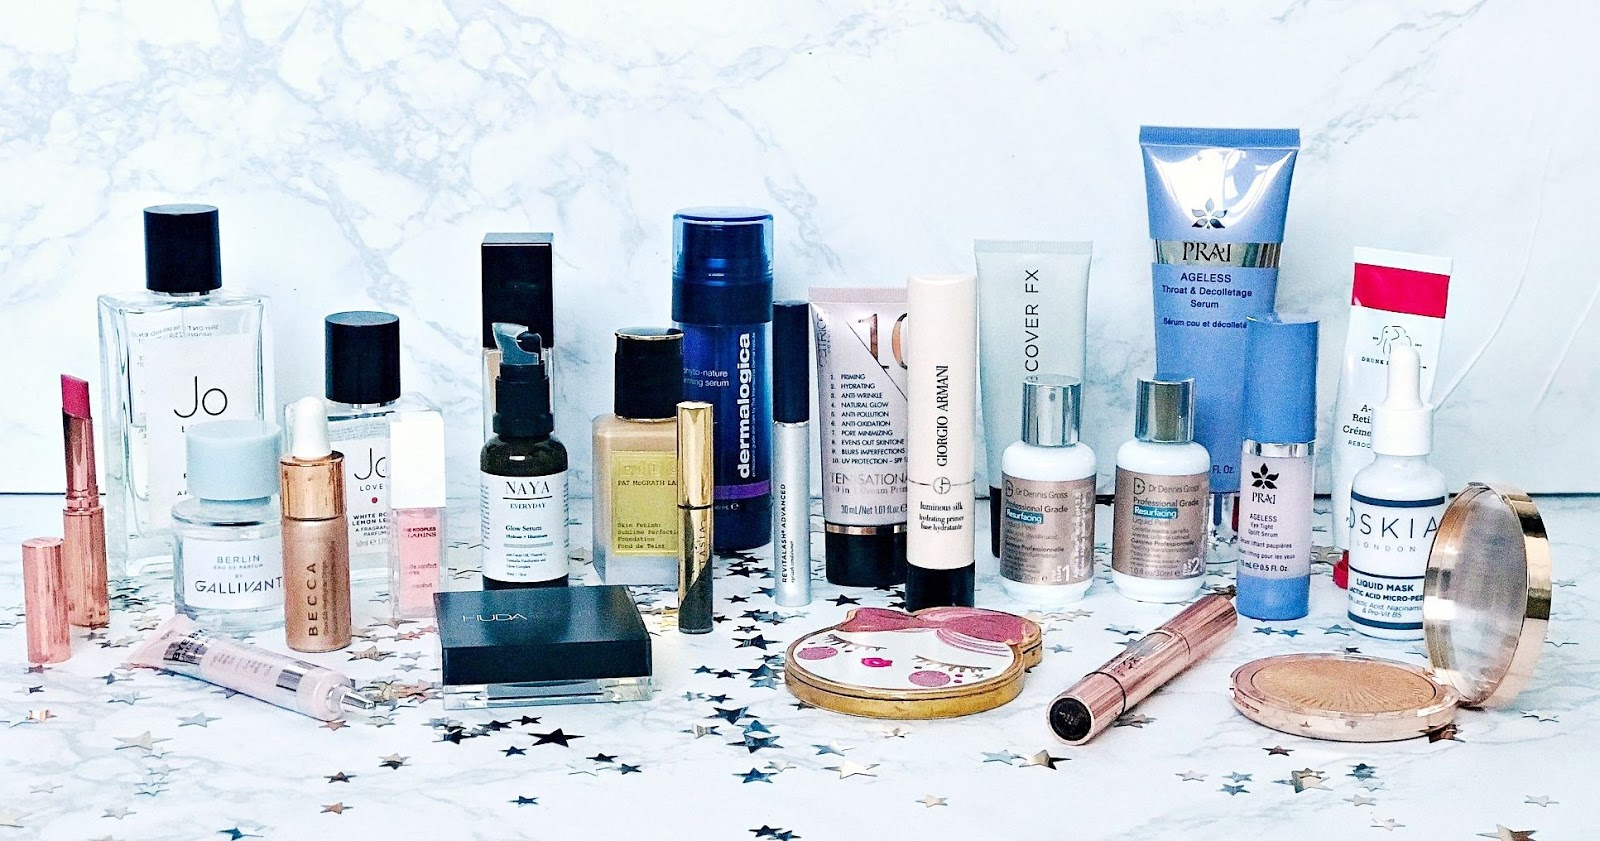 My favourite beauty discoveries of 2019